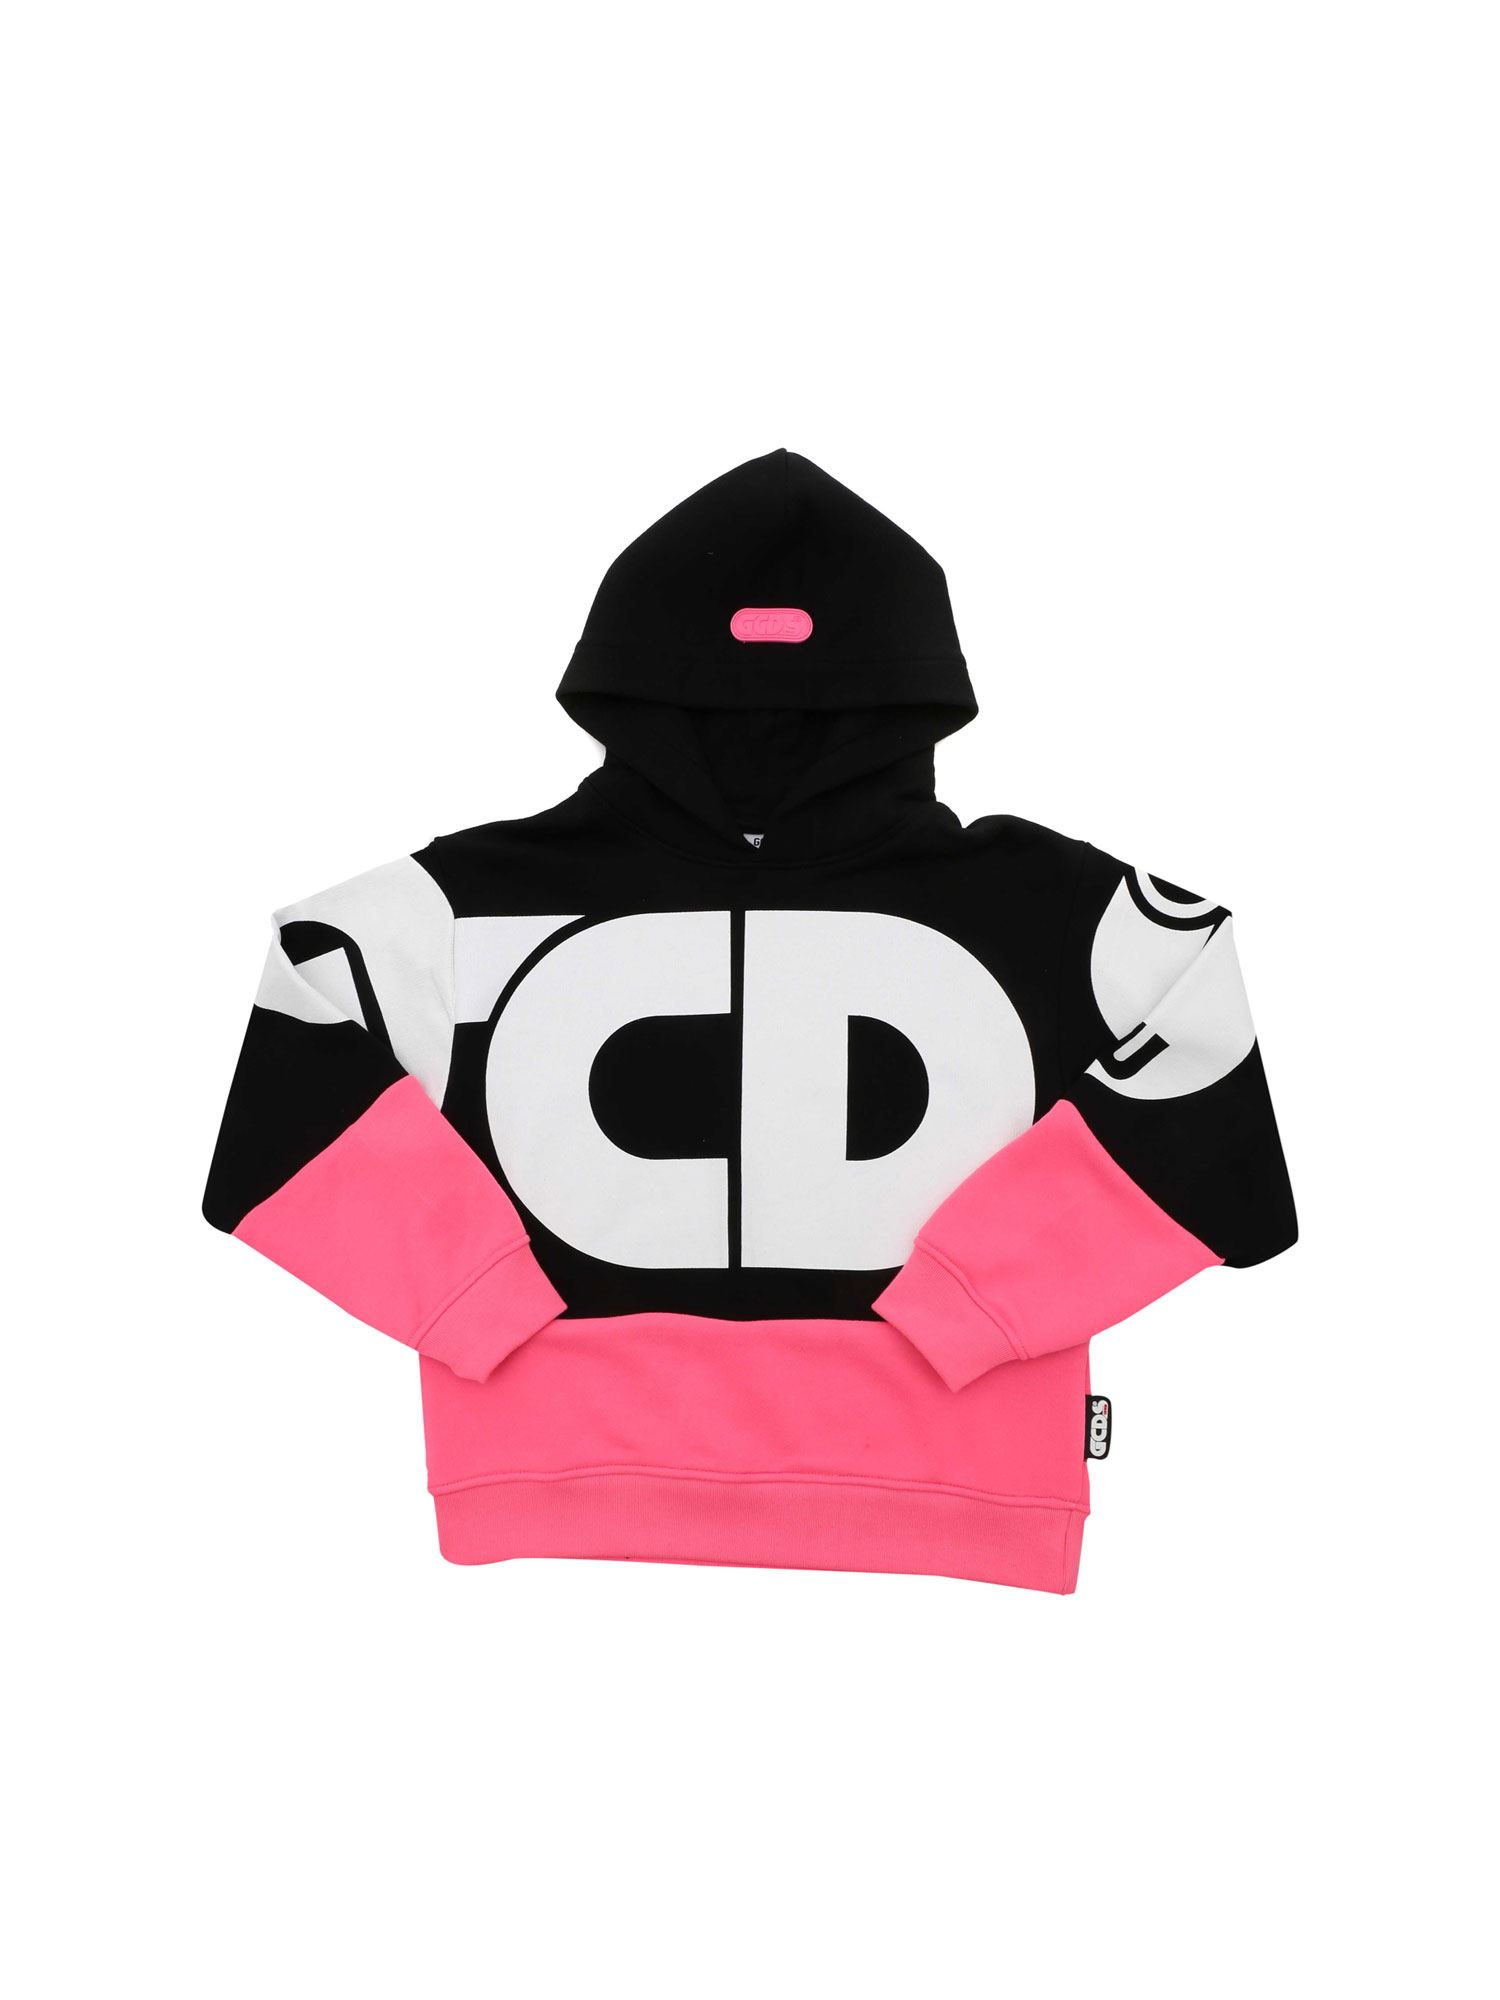 Gcds MAXI LOGO PRINT SWEATSHIRT IN BLACK AND FUCHSIA